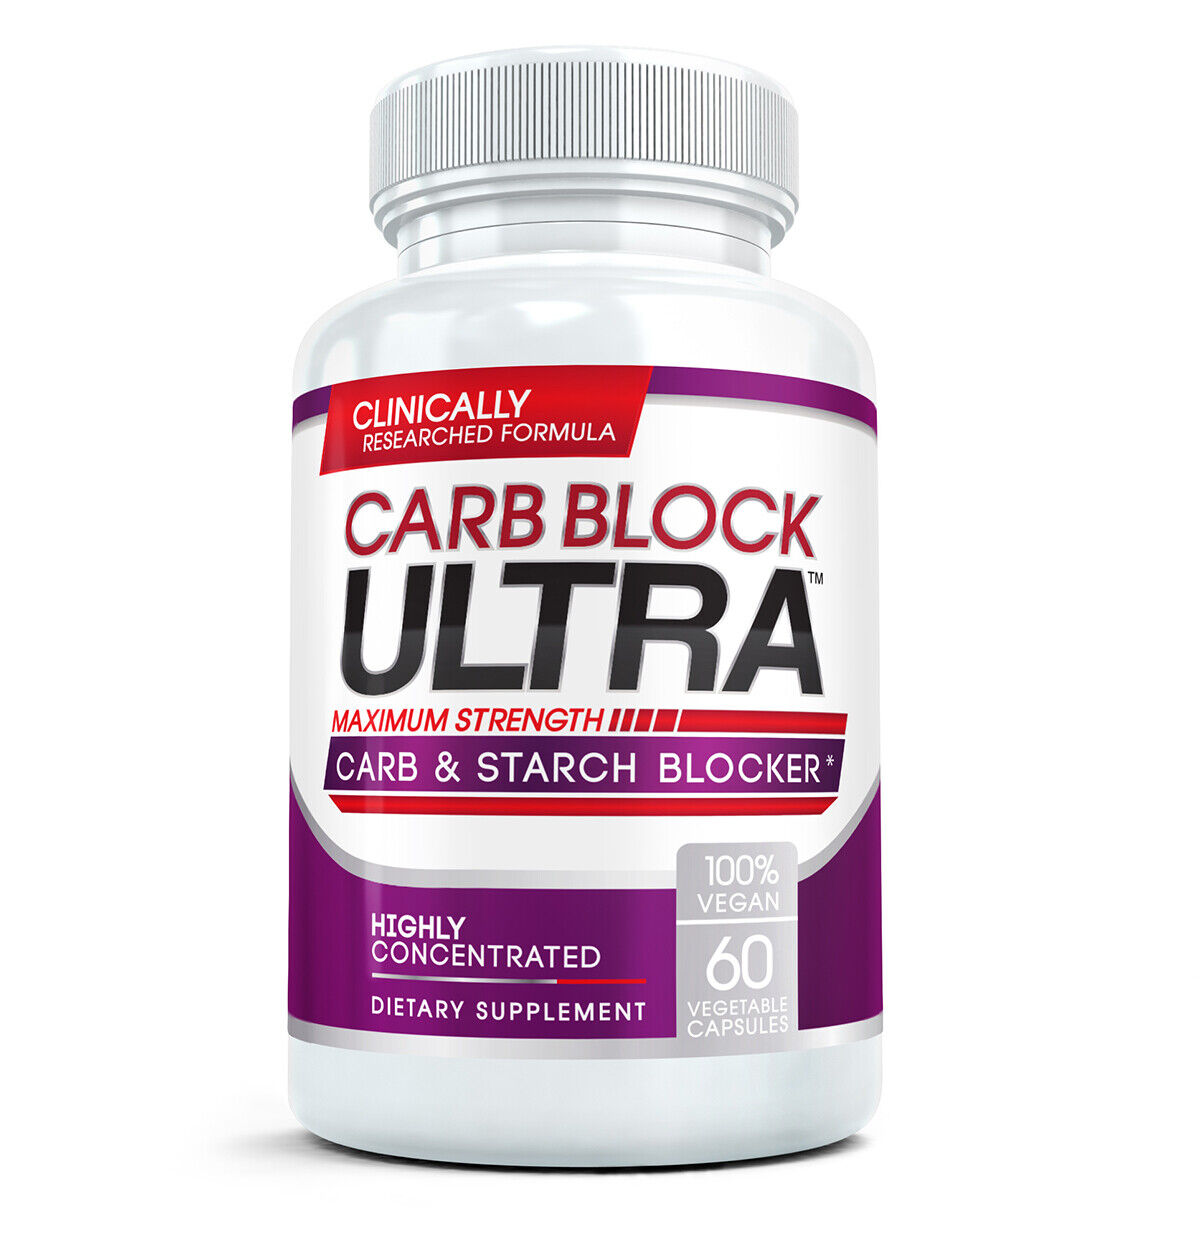 Carb Block Ultra - Highly Concentrated Carbohydrates & Starch Blocker (60 Caps)